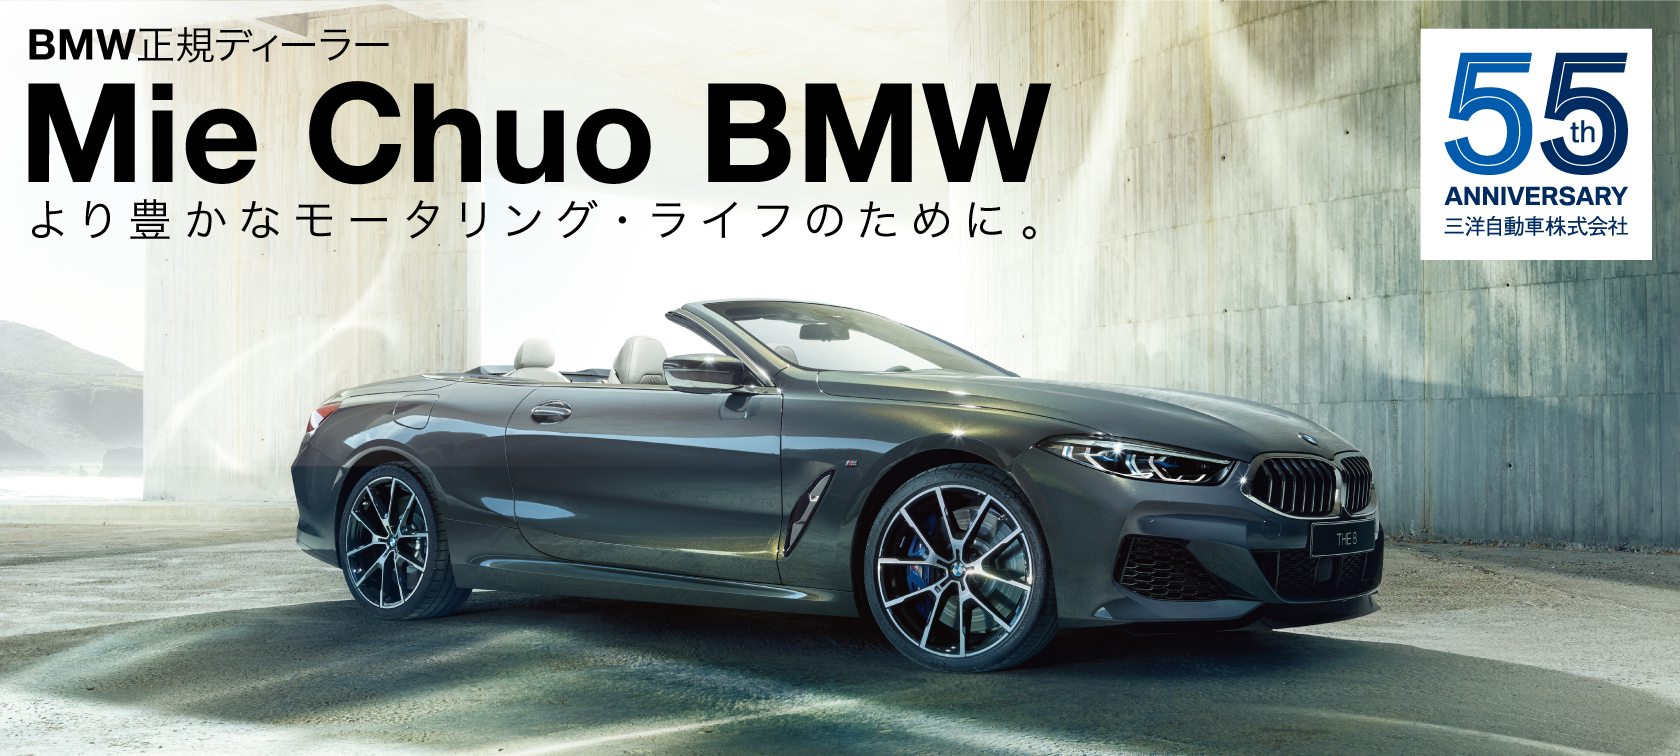 Mie Chuo BMW TOP